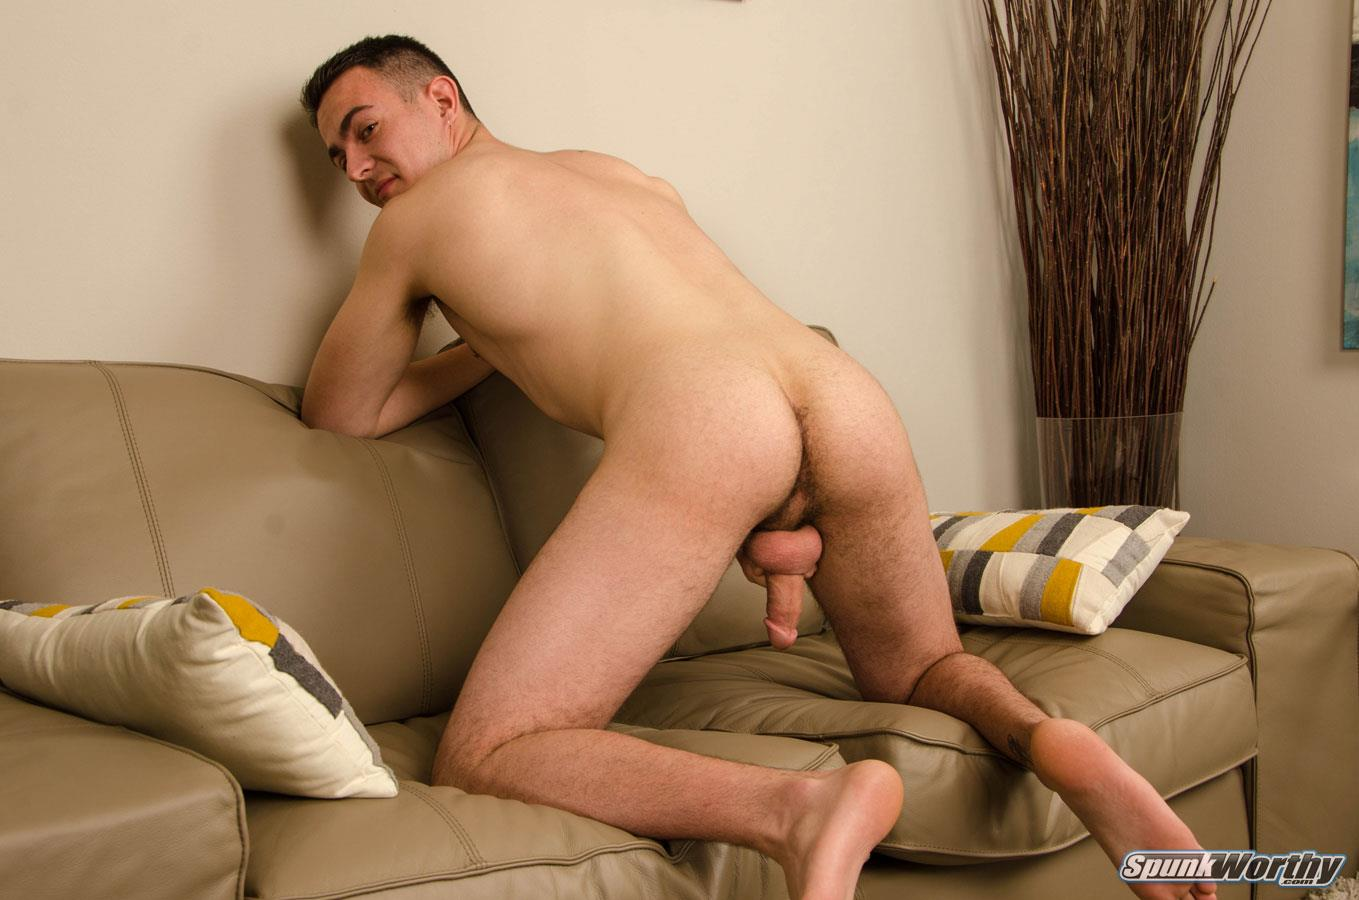 SpunkWorthy-Ryan-Kroger-Gay-Porn-Audition-Video-Jerk-off-12 Auditioning For Gay Porn And Jerking Out A Big Load Of Cum